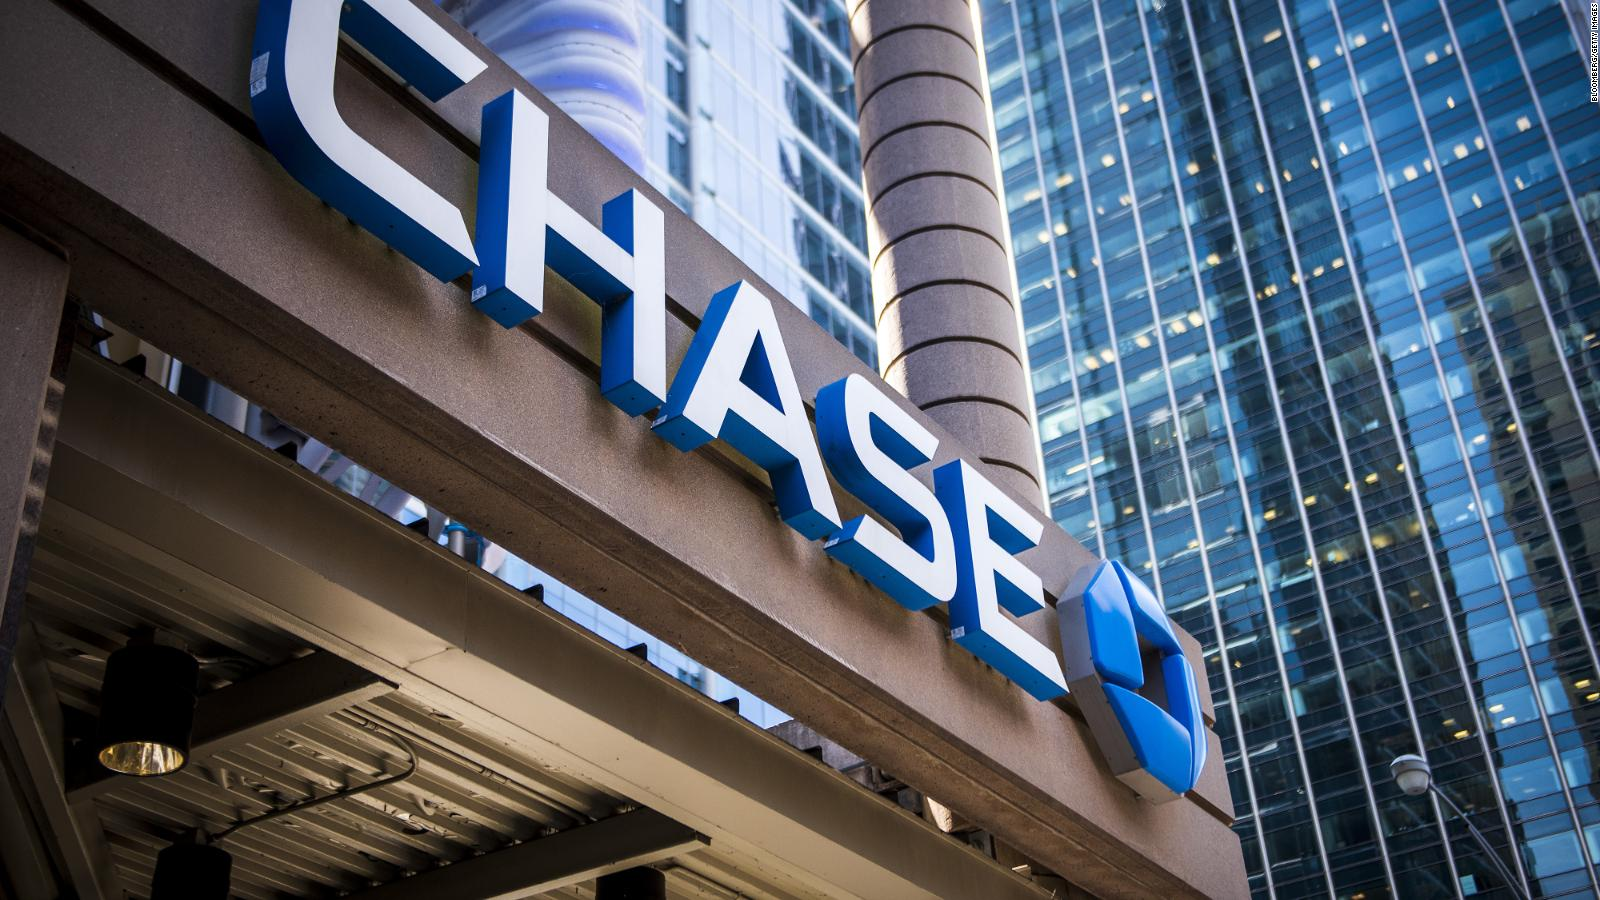 Chase Told Customers To Stop Splurging On Coffee And Cabs You Can Imagine How That Went Cnn